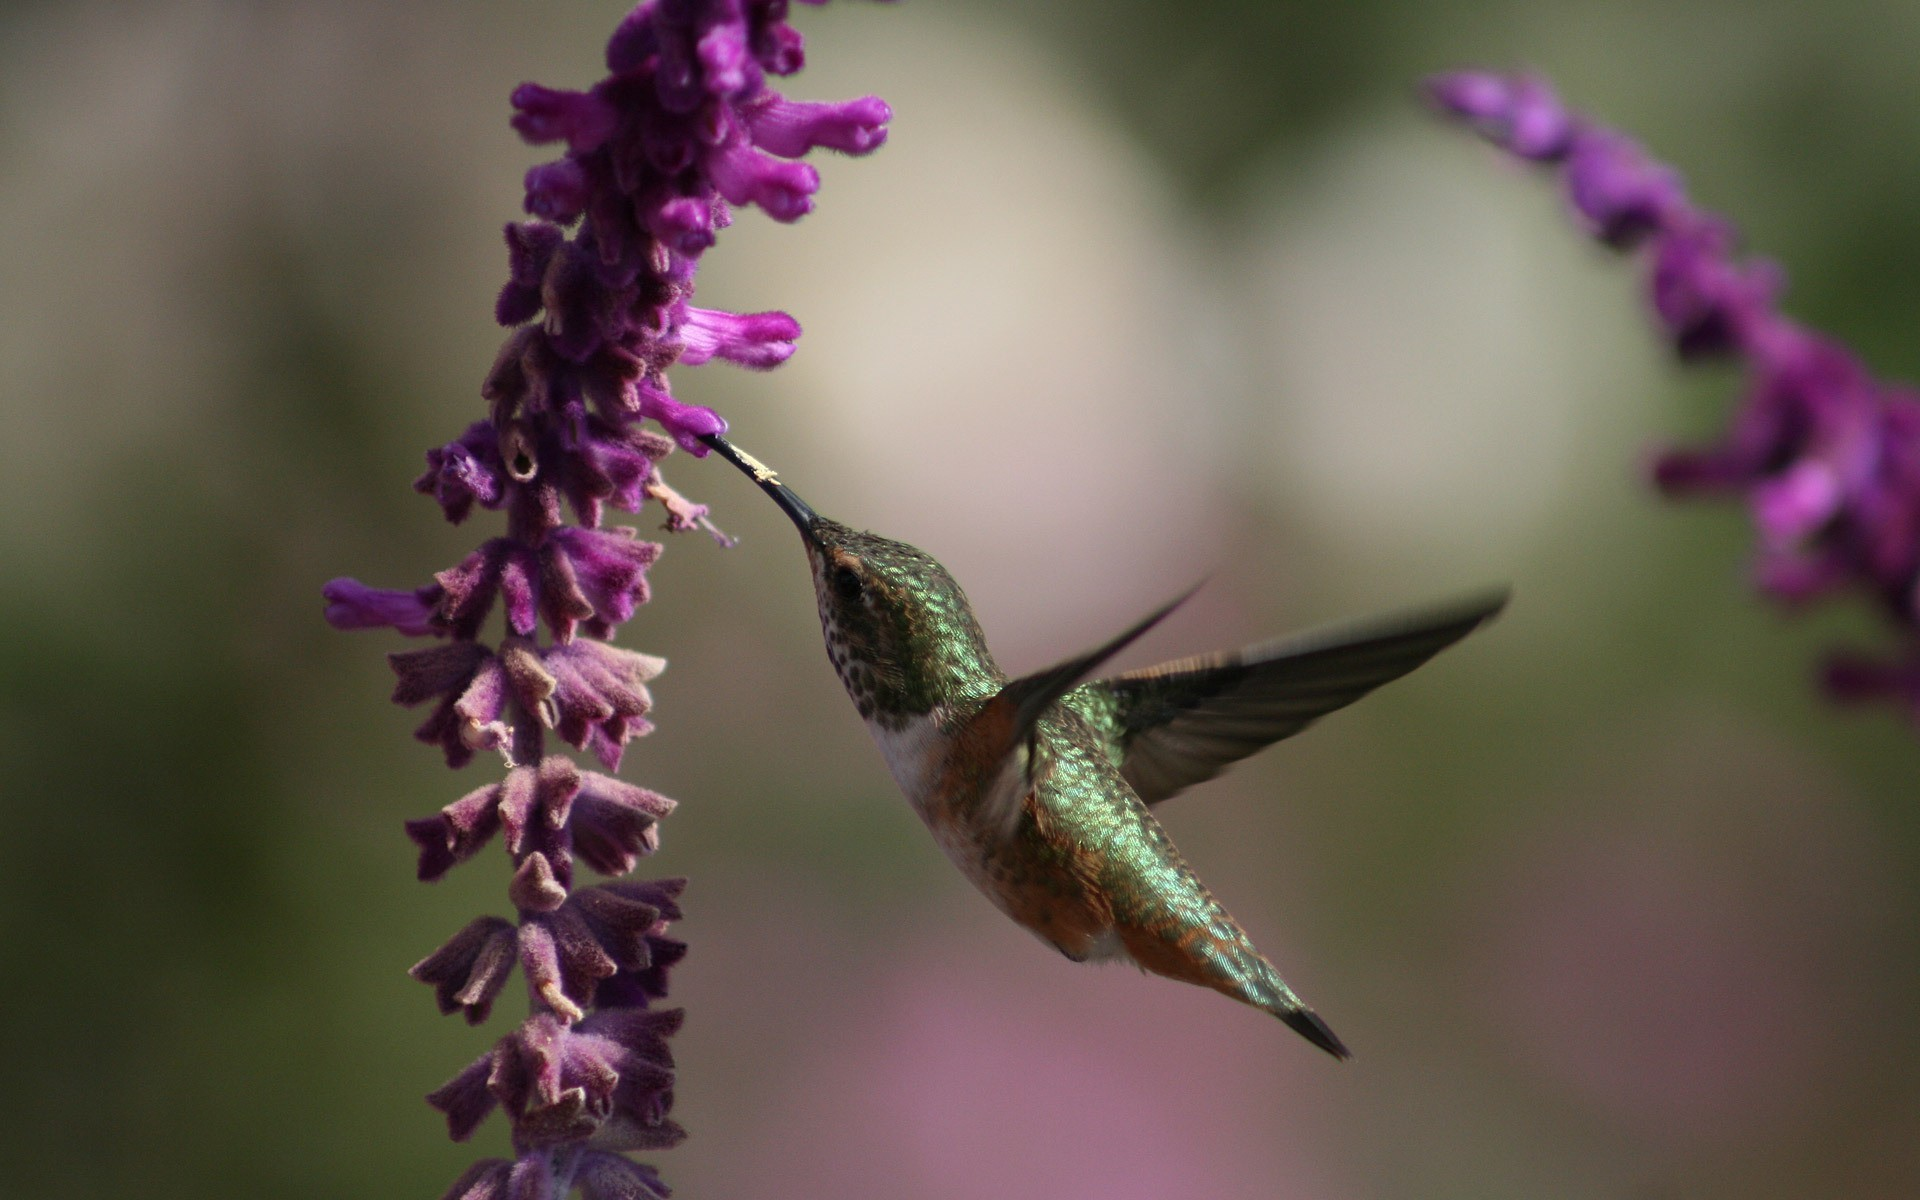 nature Flowers Birds hummingbirds HD Wallpaper